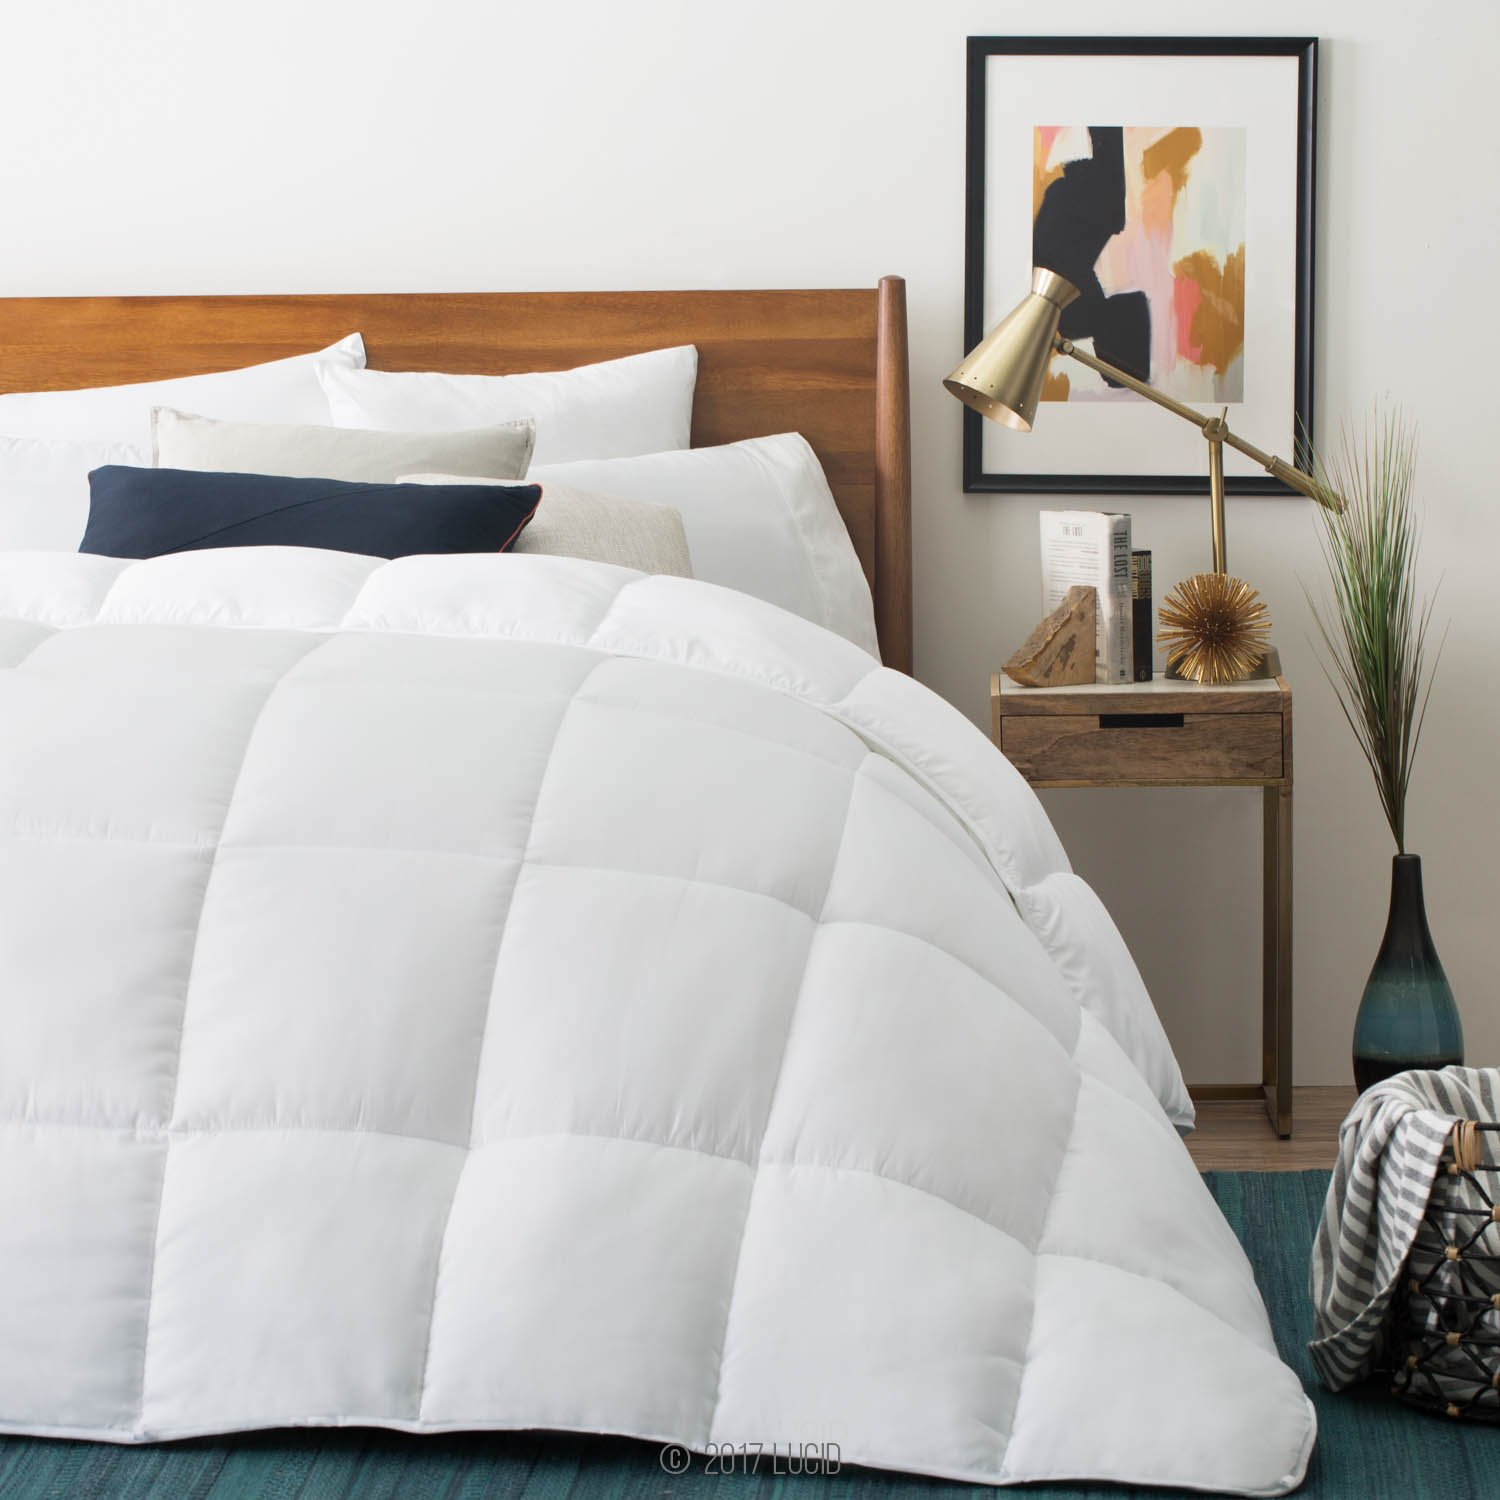 400 GSM White Ultra Soft and Cozy Lucid Down Alternative Comforter Full 8 Duvet Loops Hypoallergenic Machine Washable All Season 3 Year Warranty Box Stitched